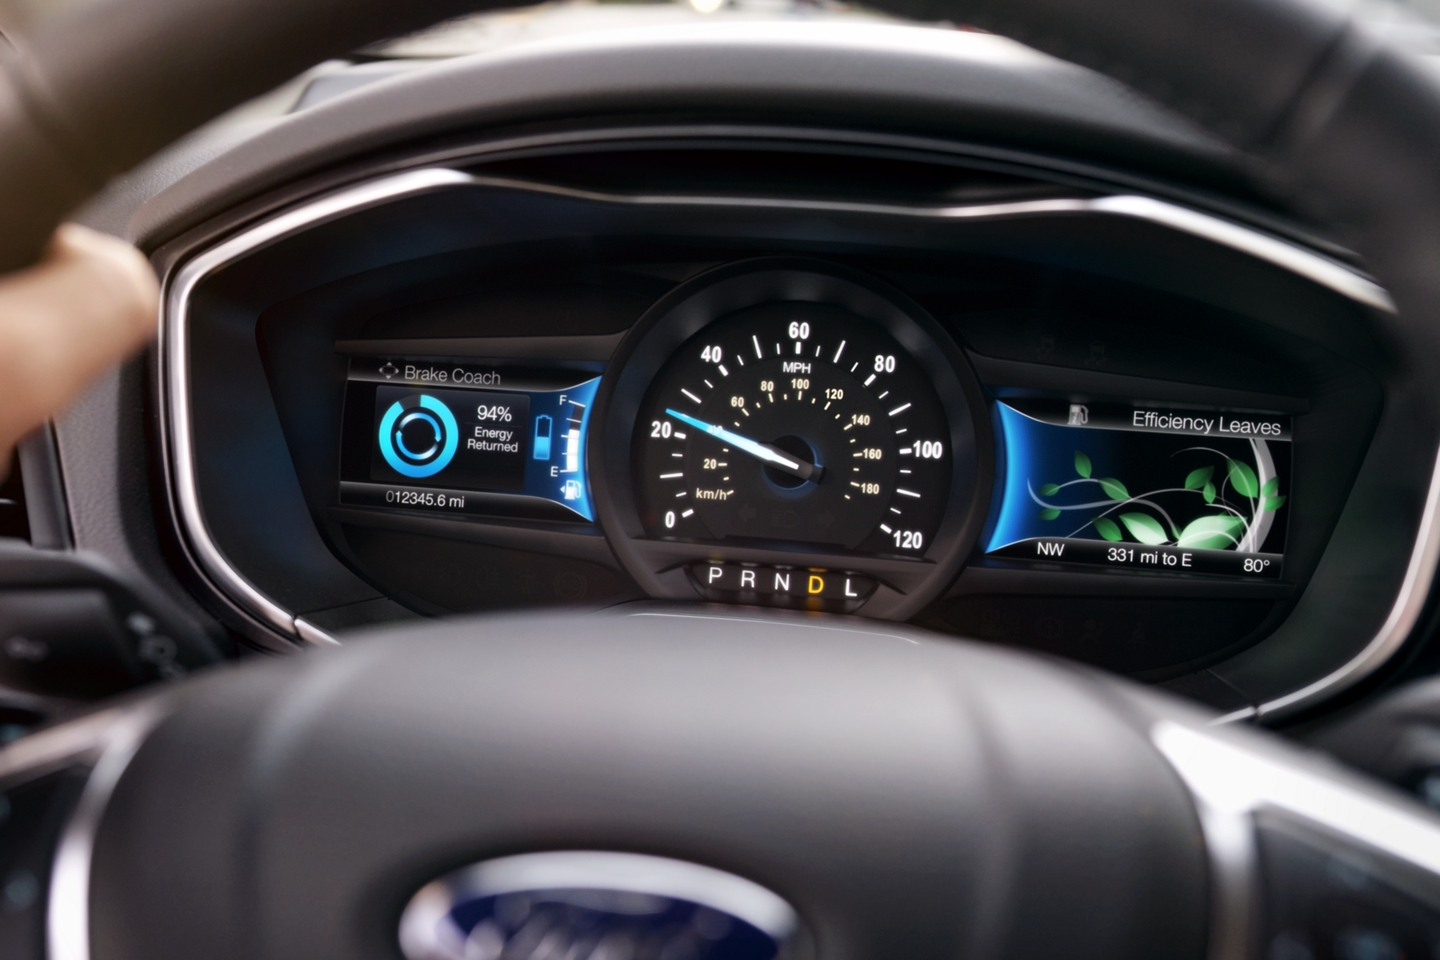 Power in the 2020 Ford Fusion